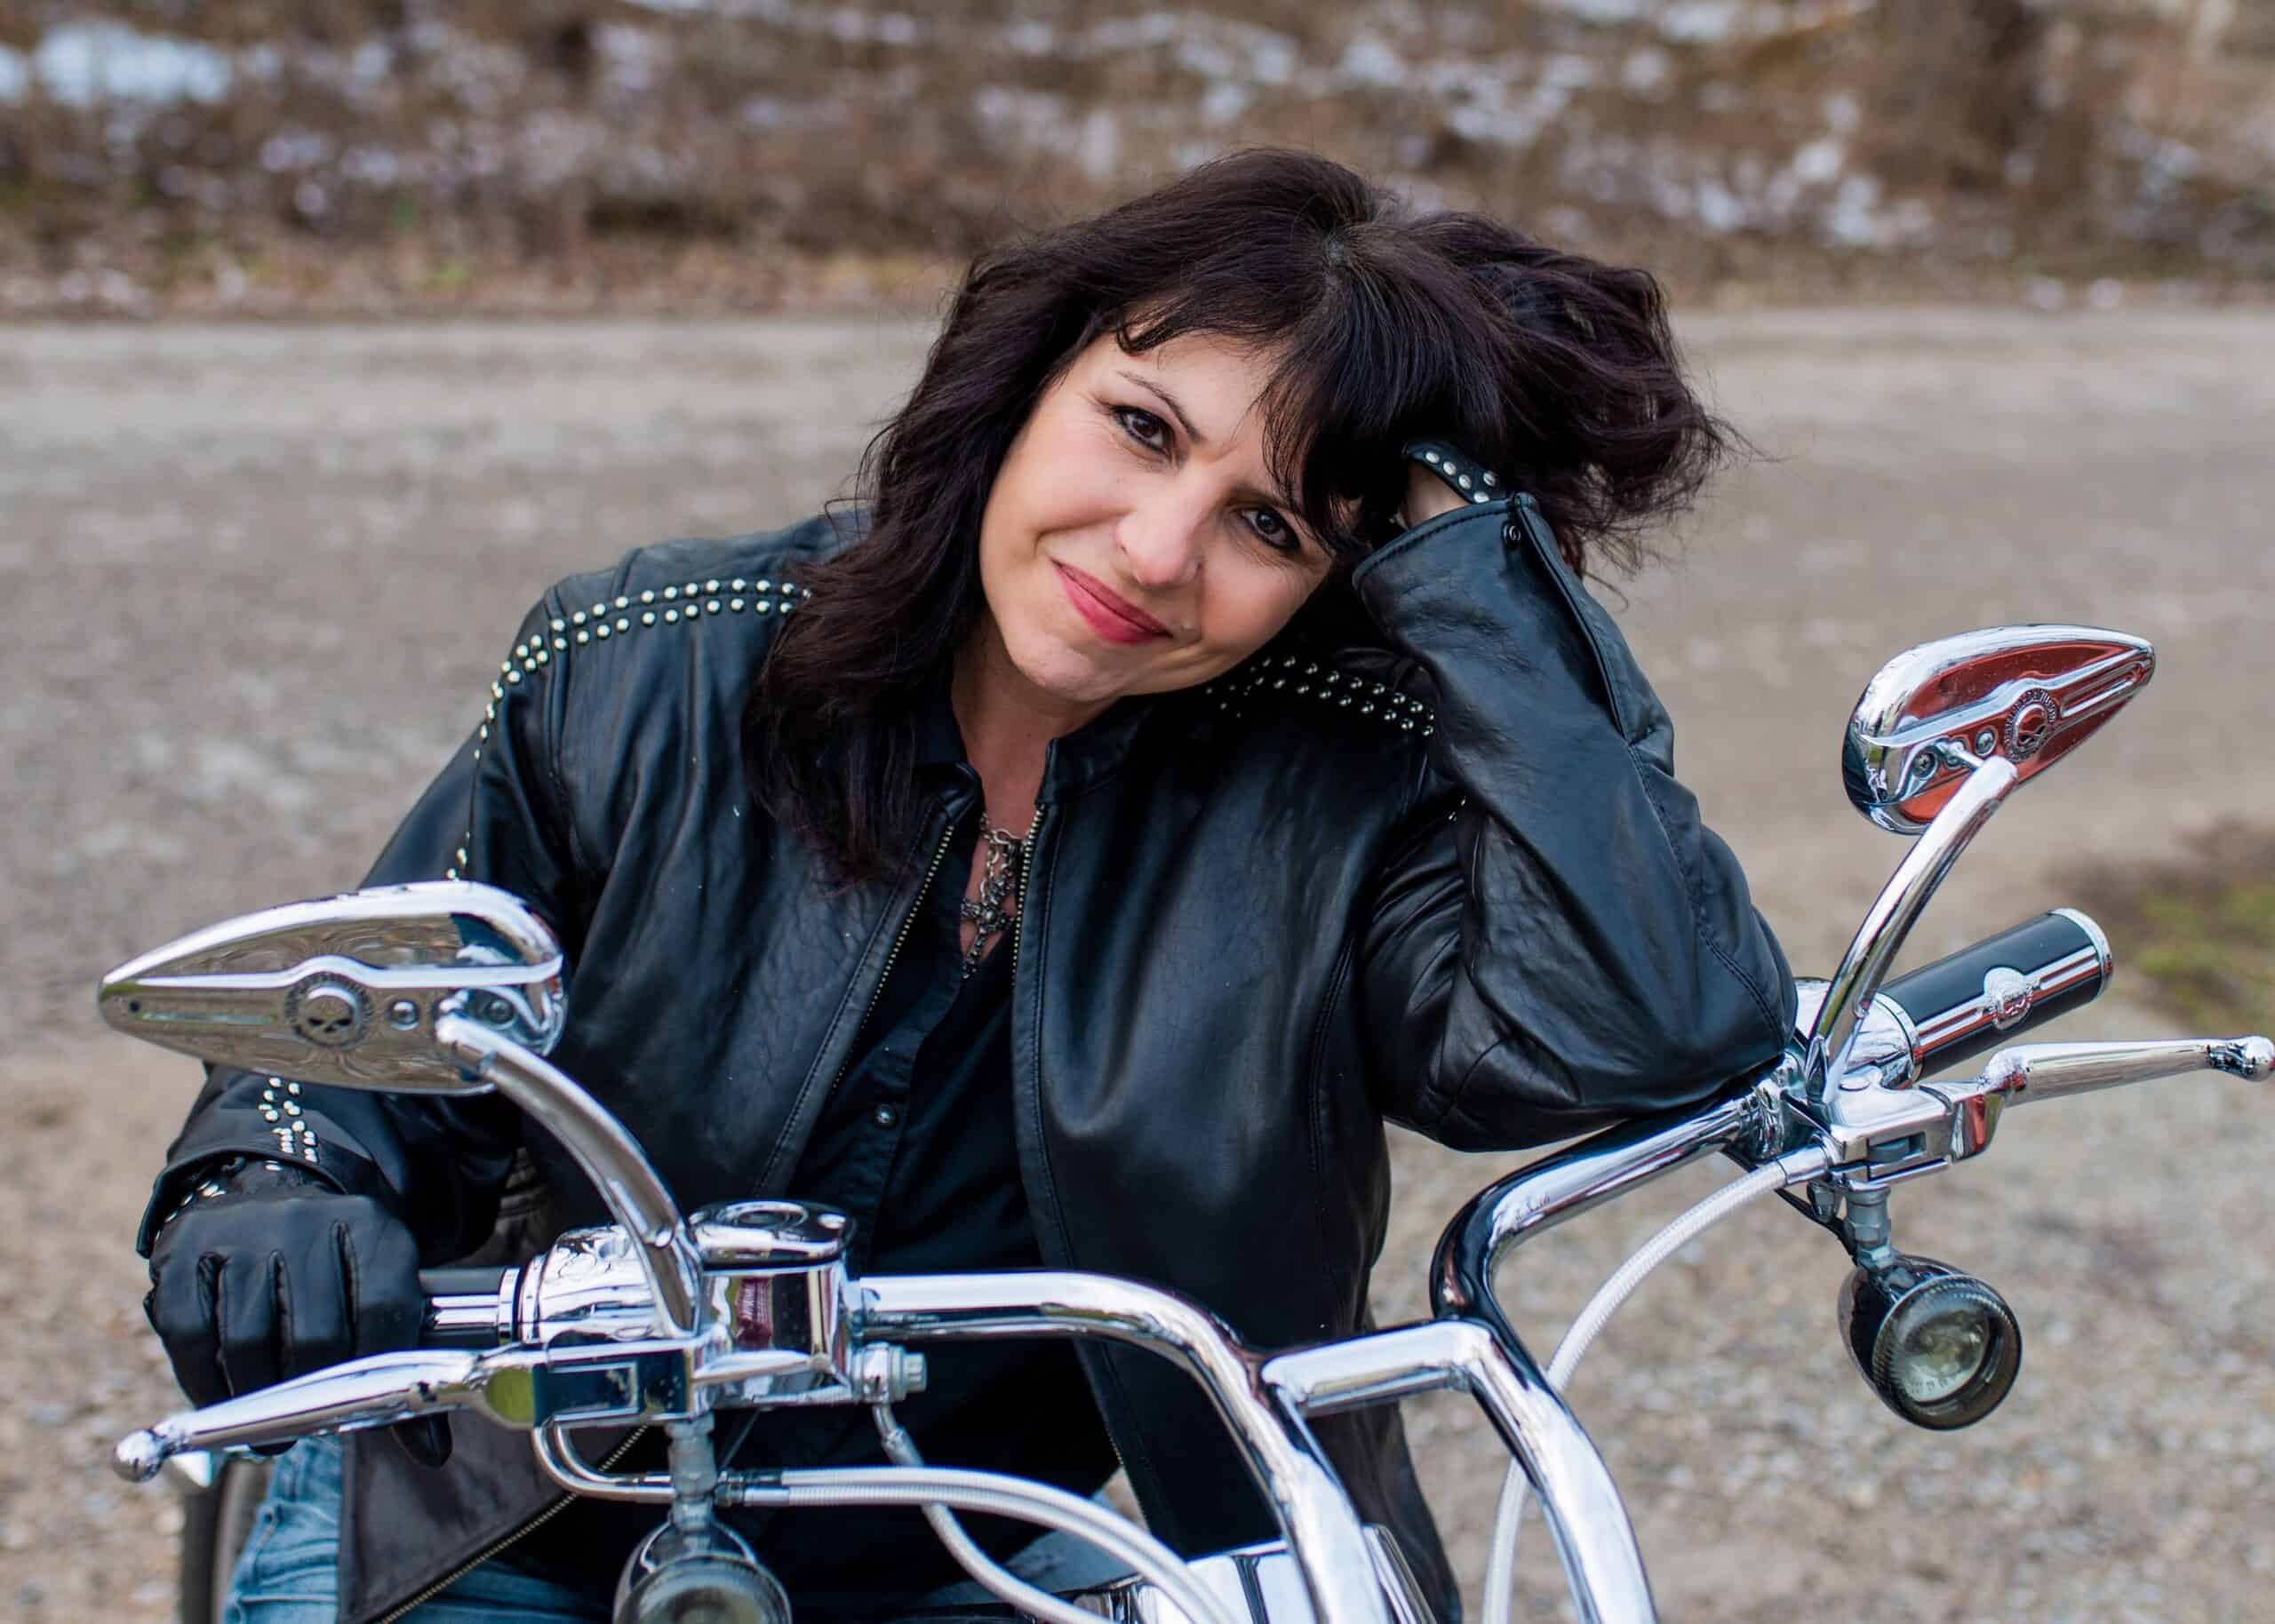 Close up of woman sitting on a motorcycle